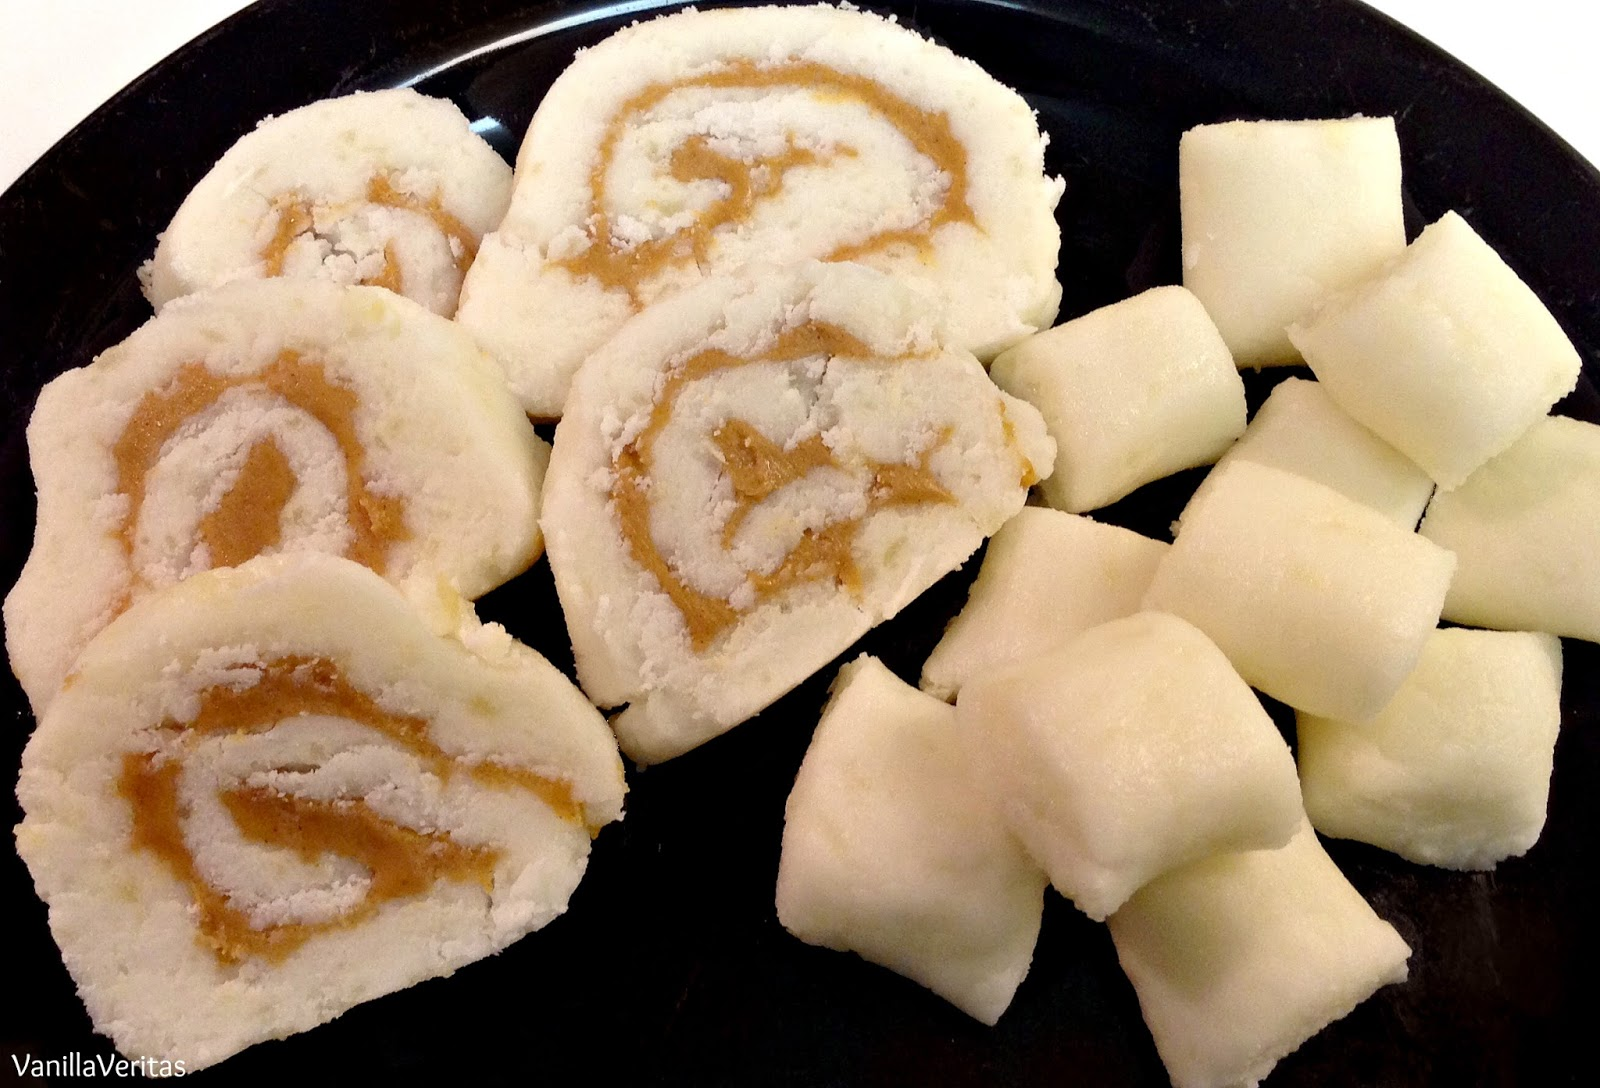 potato candy irish traditional old-fashioned old fashion dessert treat peanut butter pinwheel